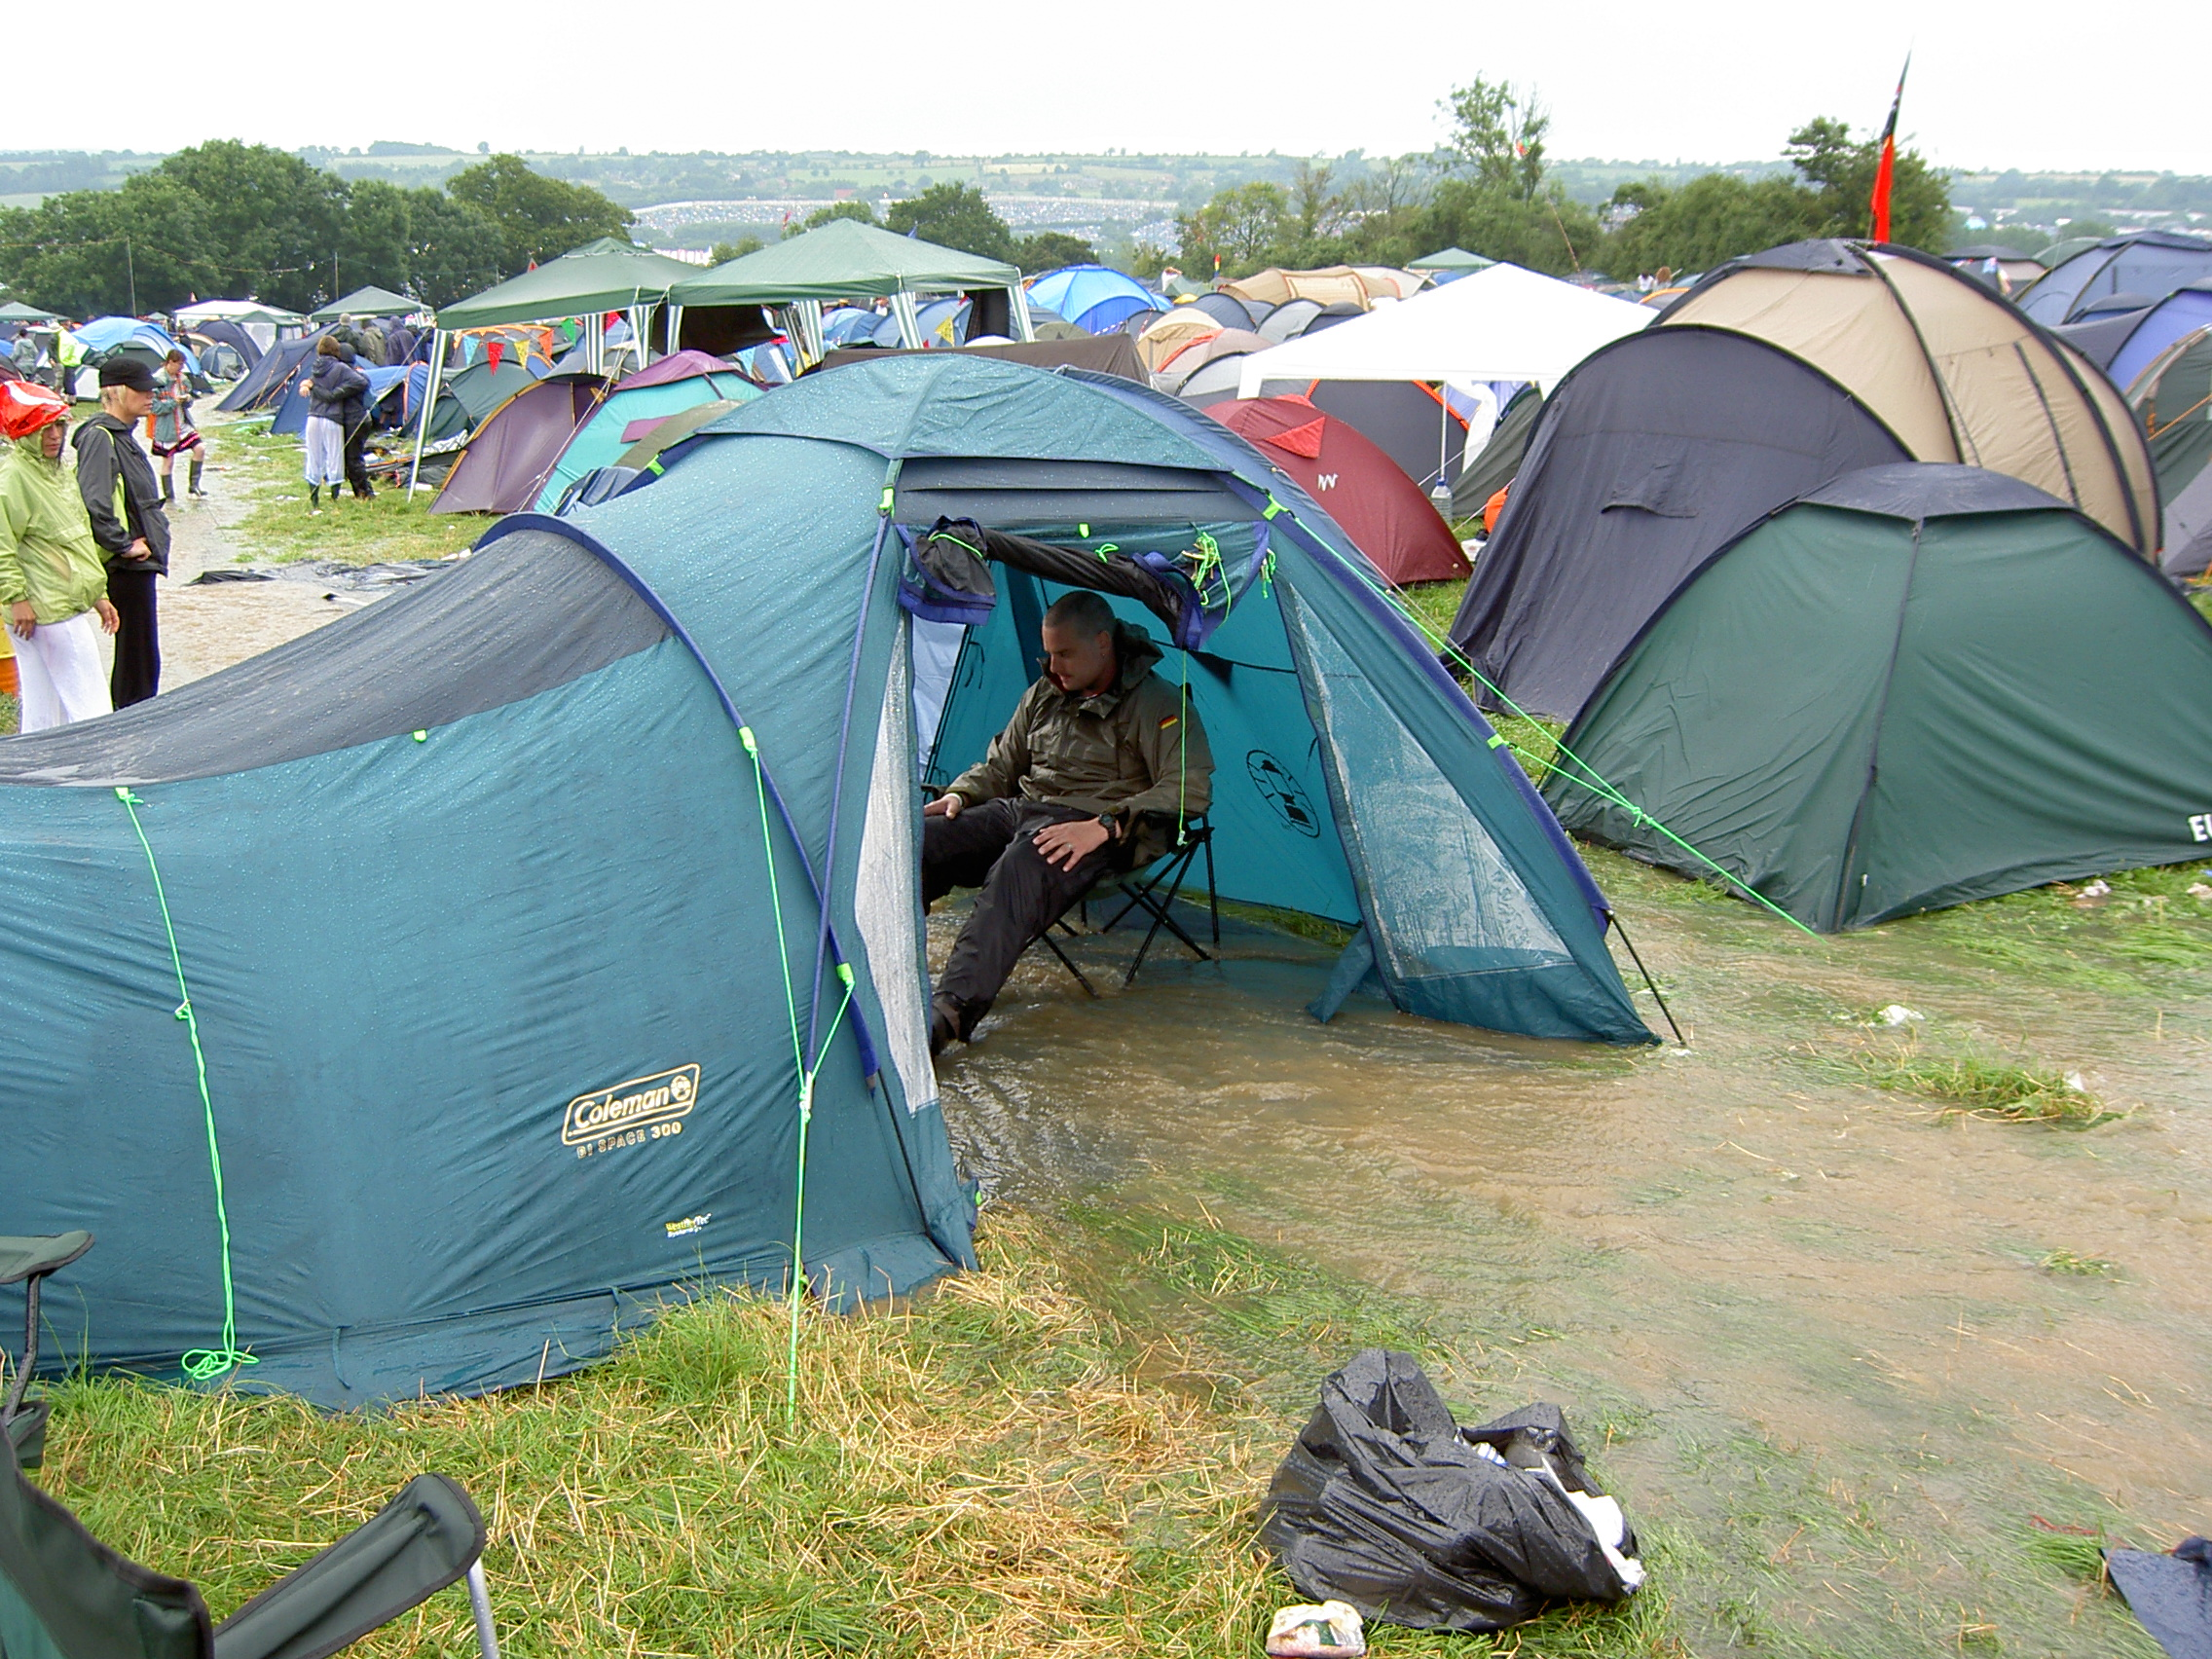 FileGlastonbury 2005 River Through Tent.jpg & File:Glastonbury 2005 River Through Tent.jpg - Wikimedia Commons